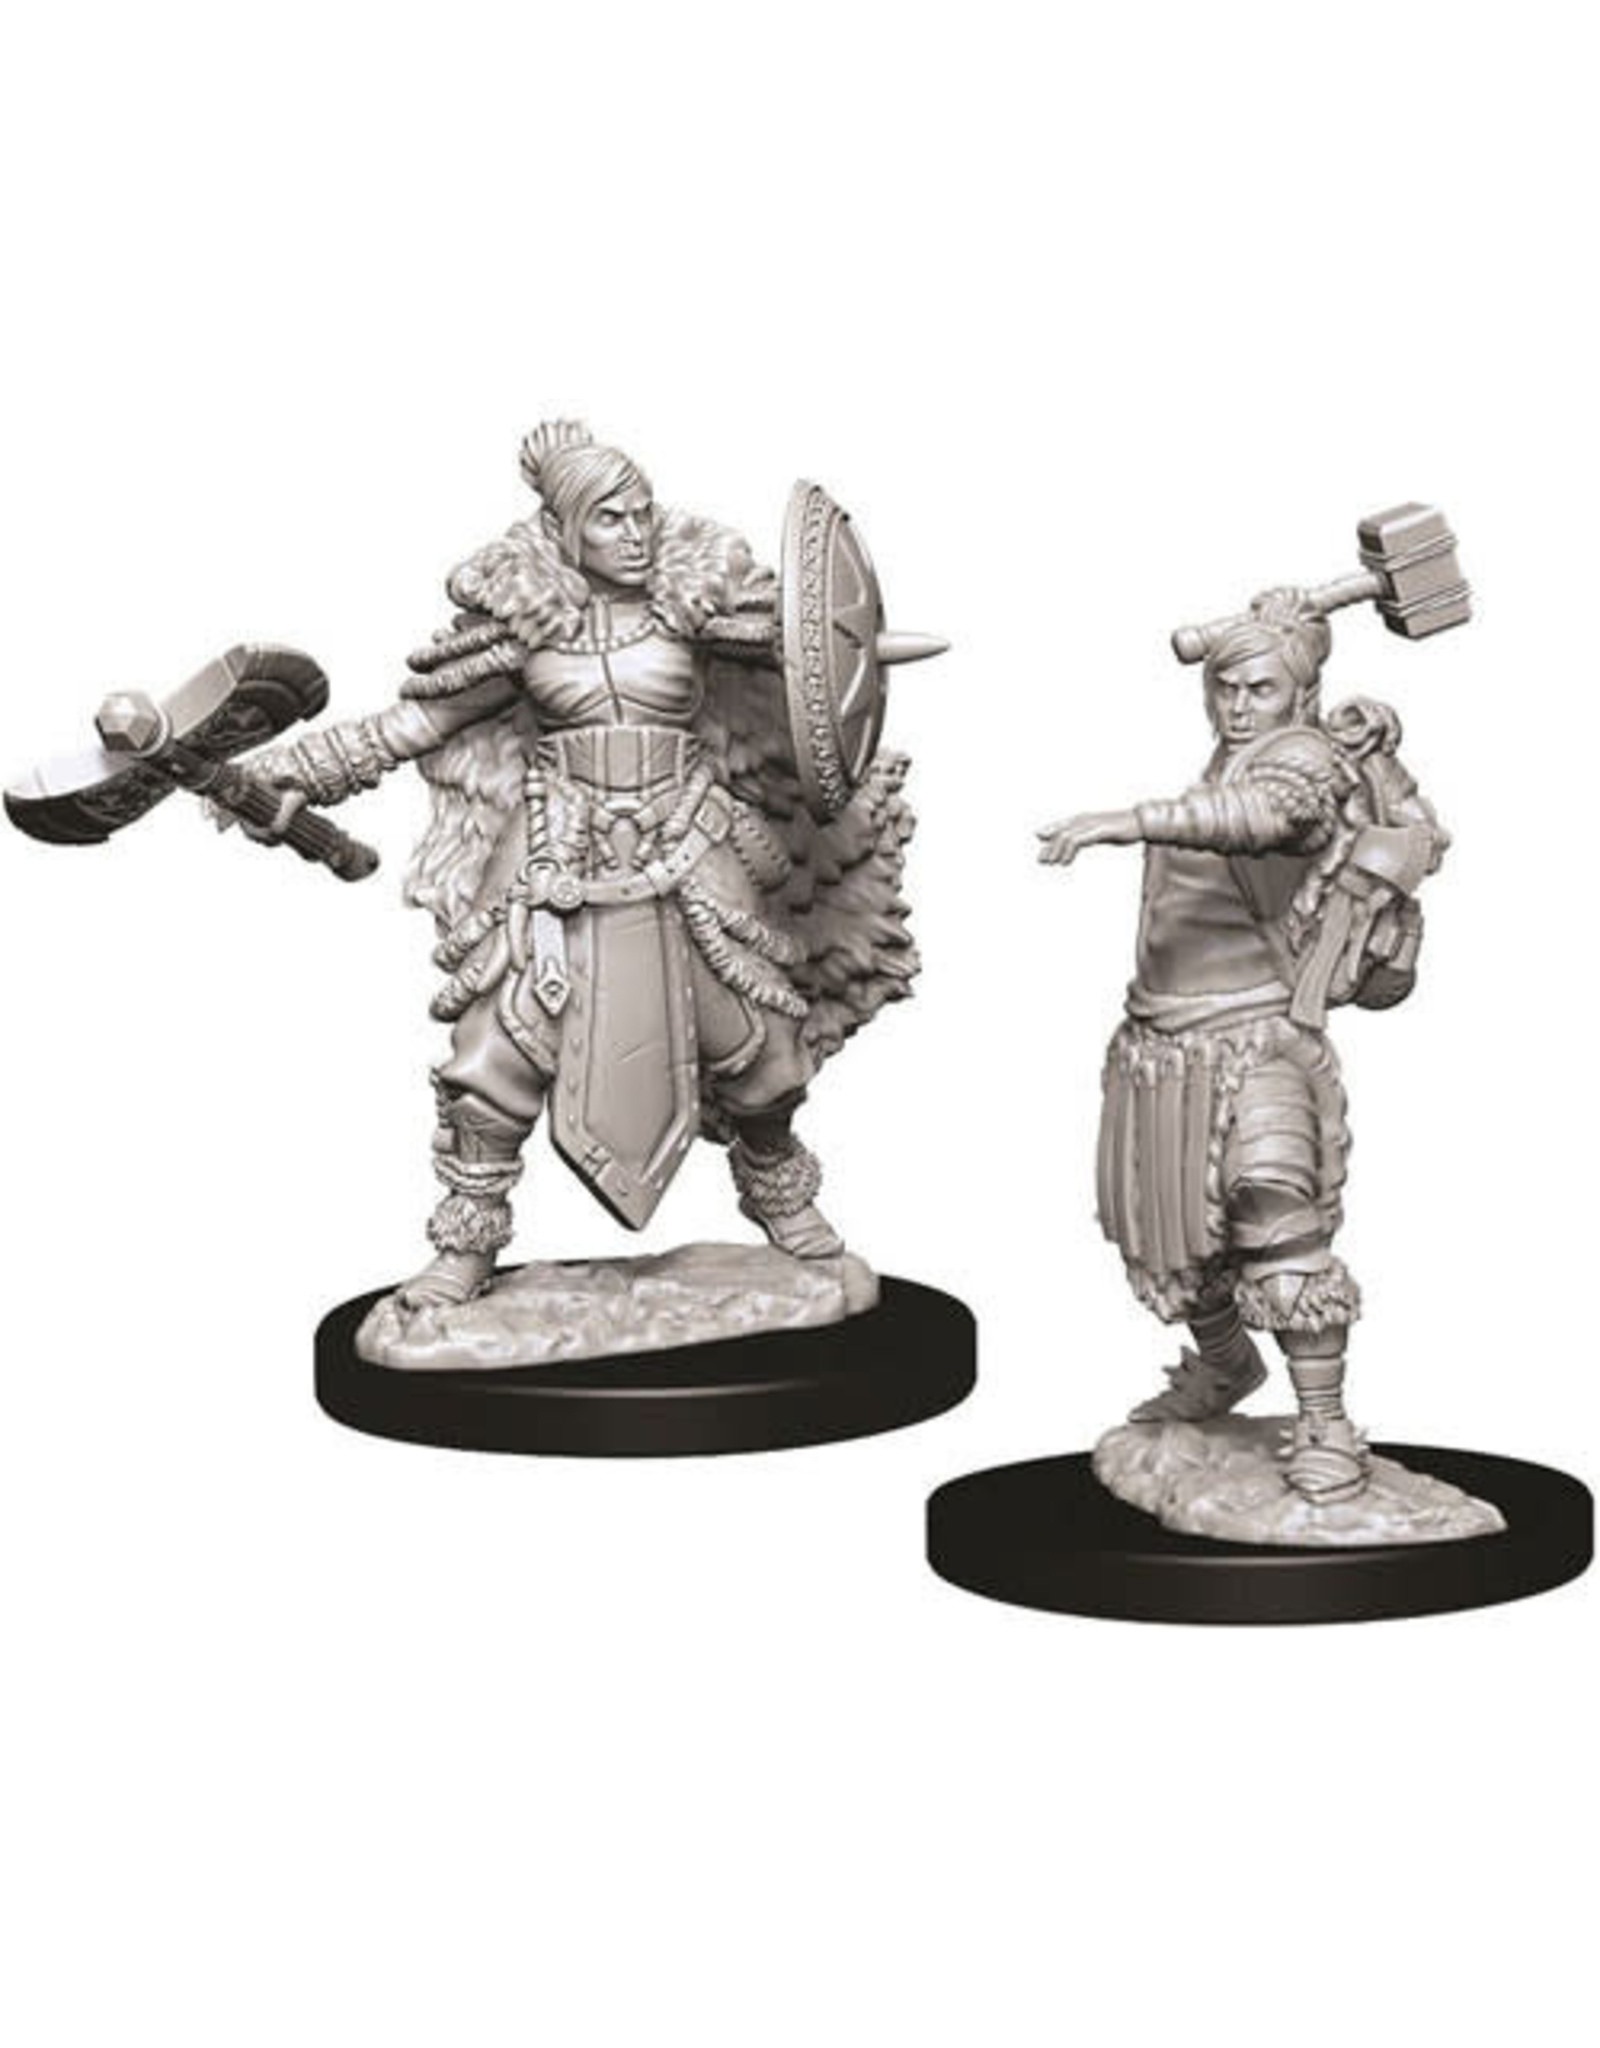 D&D Unpainted Minis: Half-Orc Female Barbarian (Wave 9)